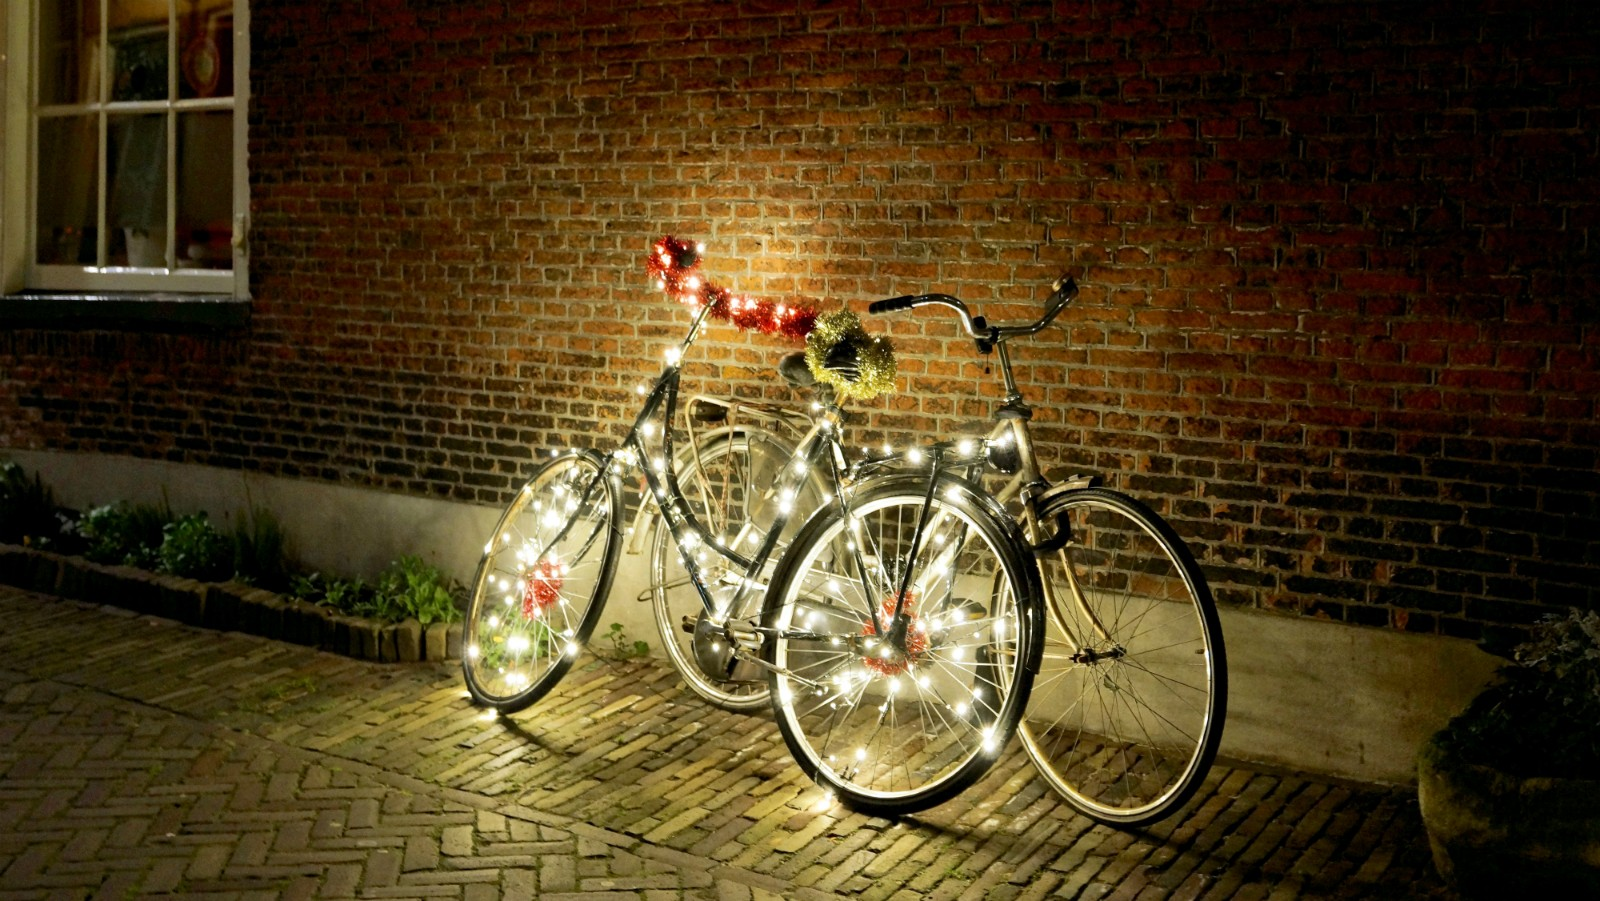 May bikes continue to light up your life in 2018